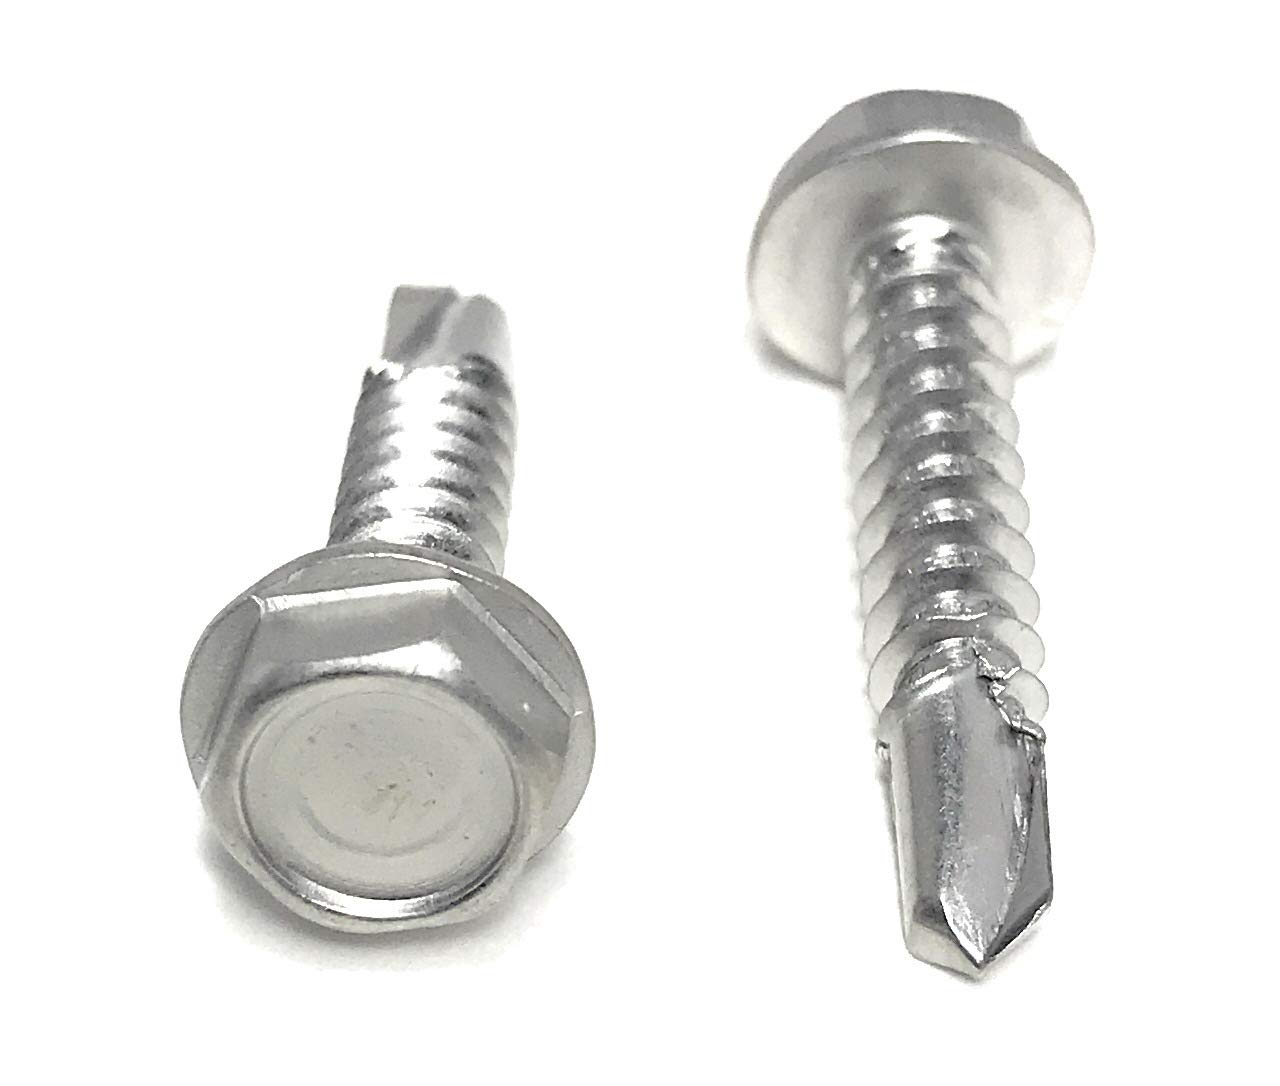 "#10x1"" Stainless Steel Hex Washer Head Self Drilling Tapping TEK Screw (410 Stainless Steel) 100 Pieces 10x1"